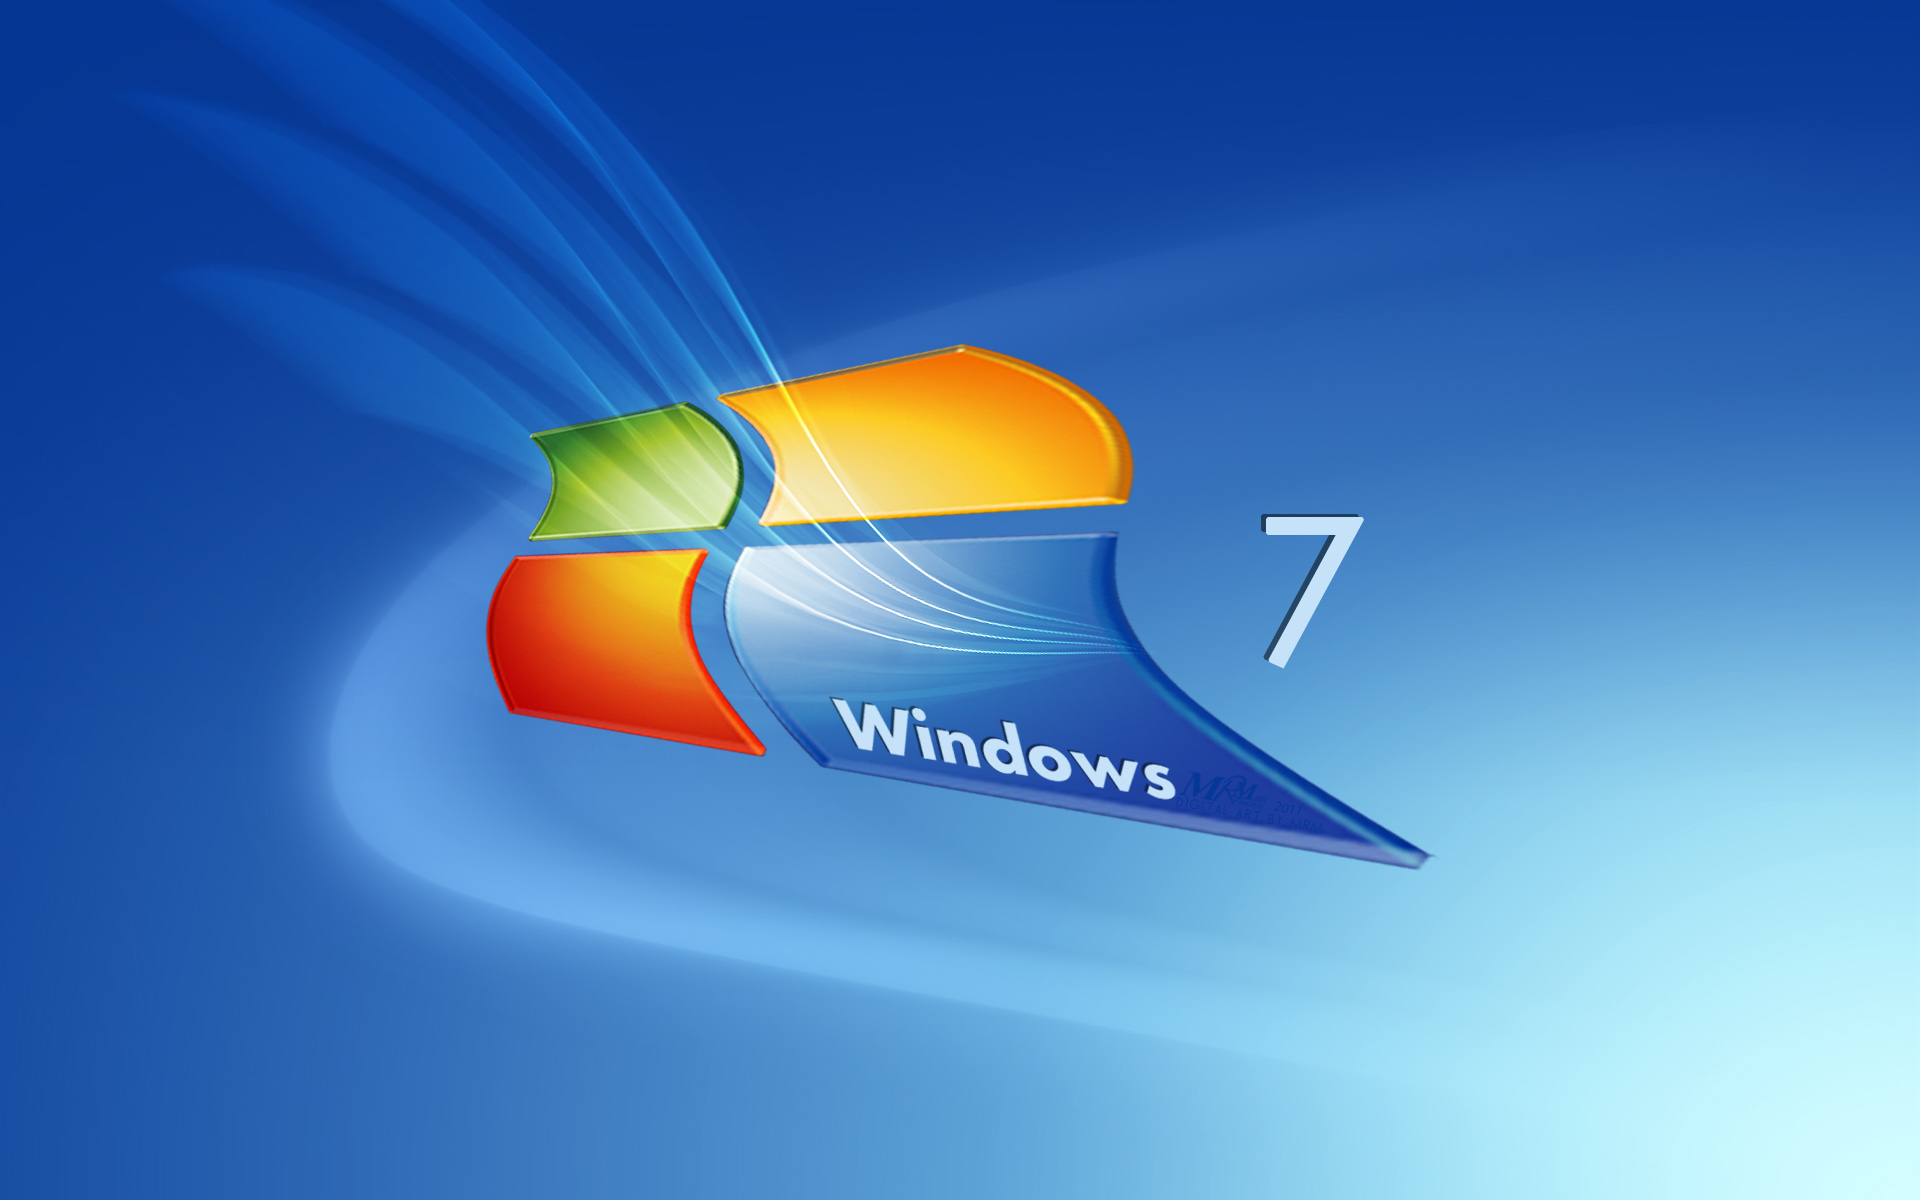 Windows 7 wallpapers hd 3d for desktop 50 wallpapers for 3d home wallpaper for pc